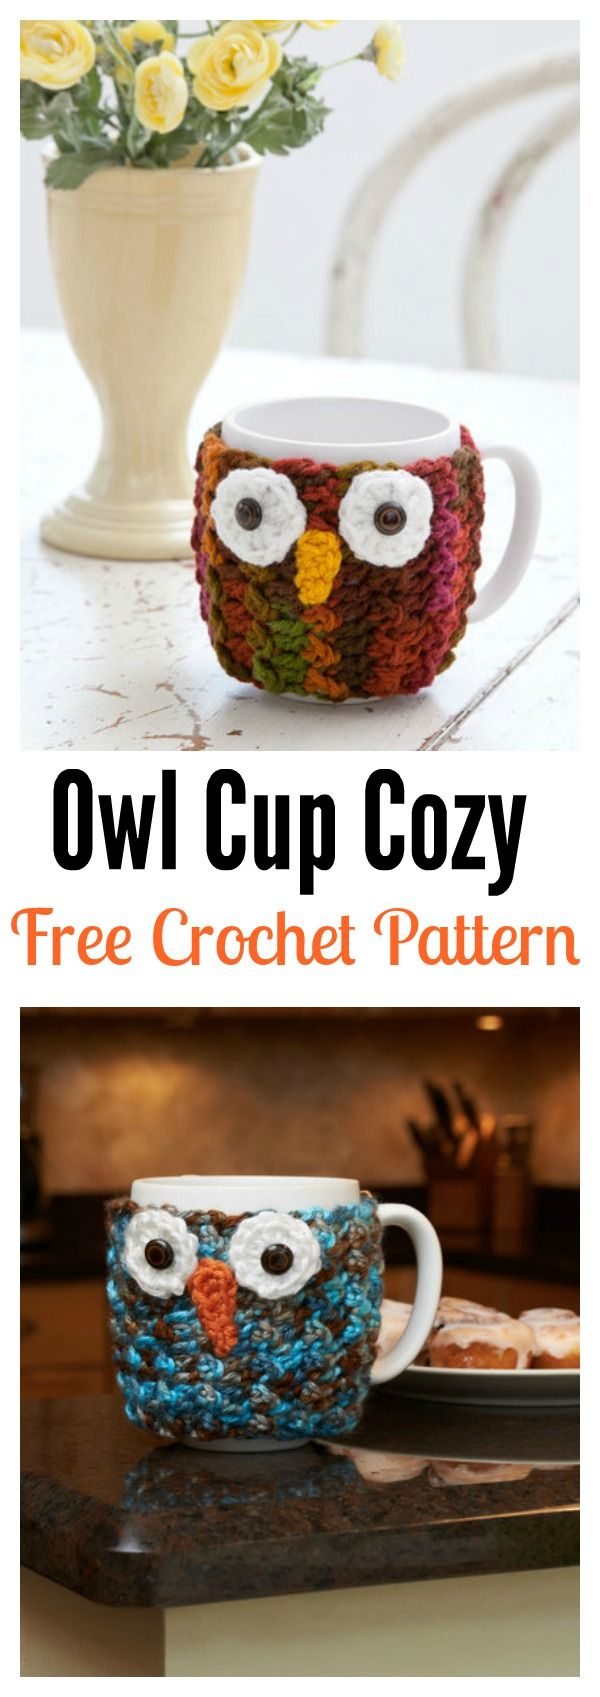 757 best images about owl crochet patterns uil for Cup cozy pillow